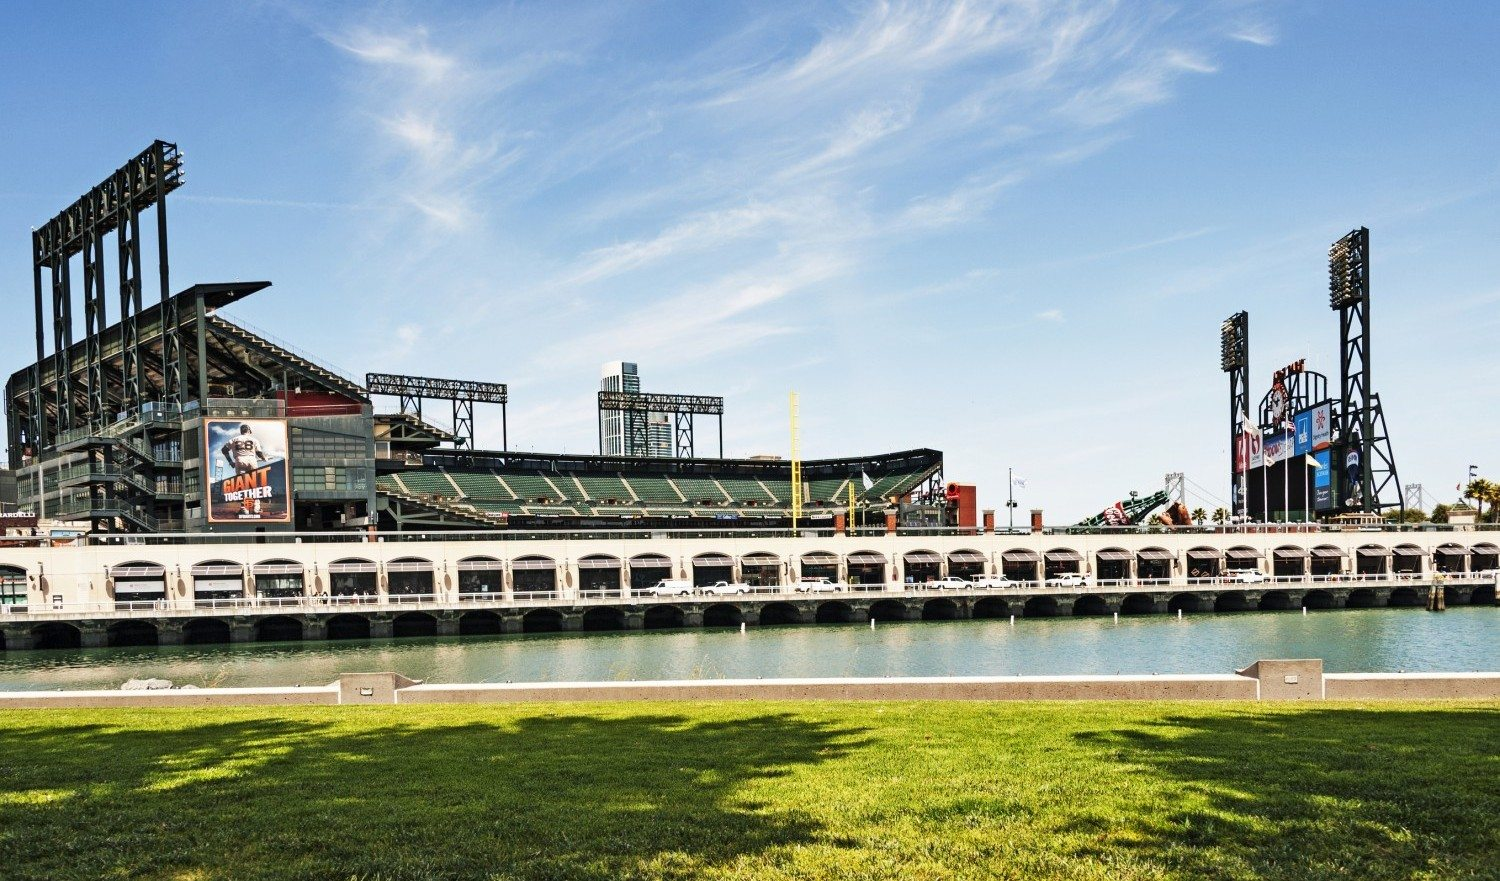 San Francisco, California, USA - May 7, 2014: This major legue Baseball Stadium known as AT&T Park the home of the San Francisco Giants located near McCovey Cove in China Basin located in the South of Market  area in this exciting city on this beautiful day with the sun the shadows, the views it was a great view .